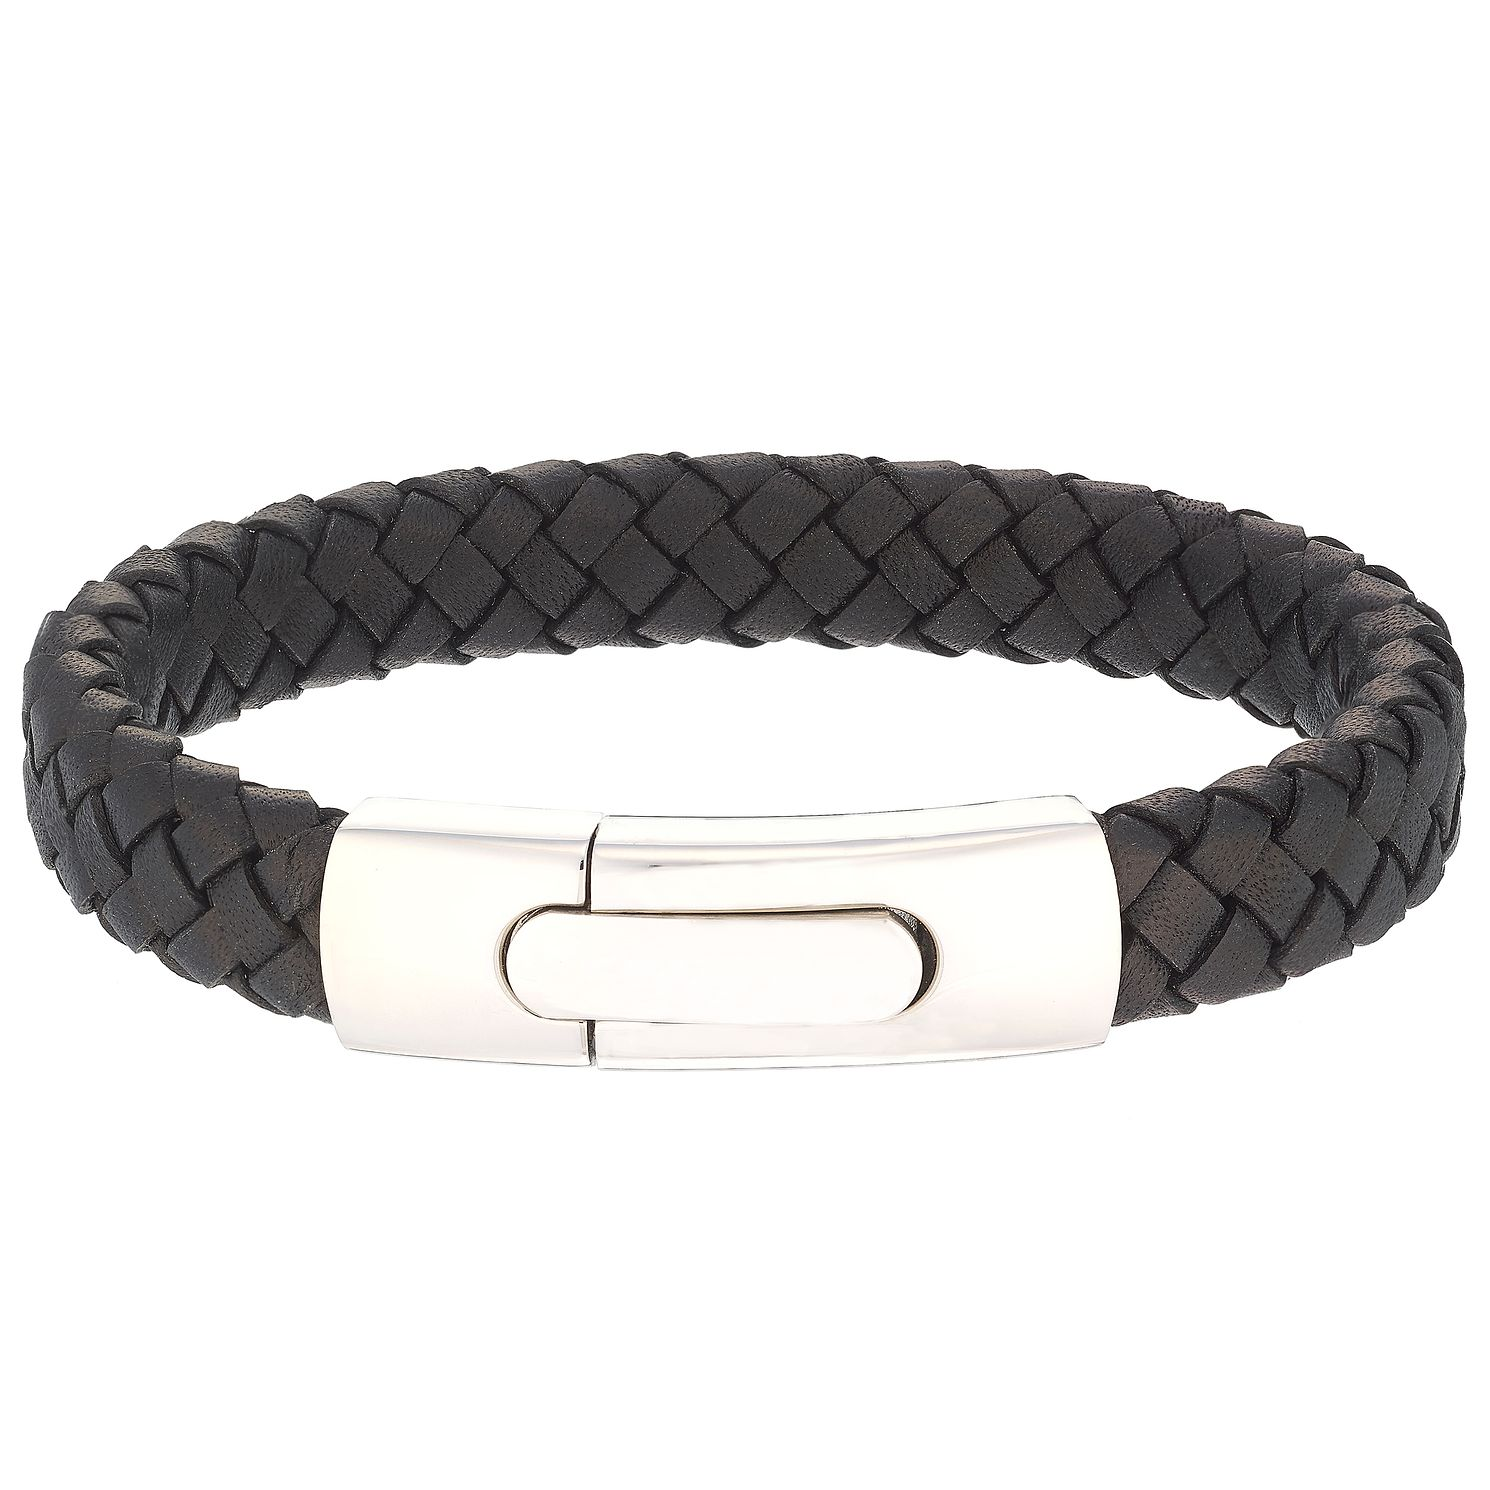 Men's Black Leather Stainless Steel 12mm Bracelet - Product number 5062020